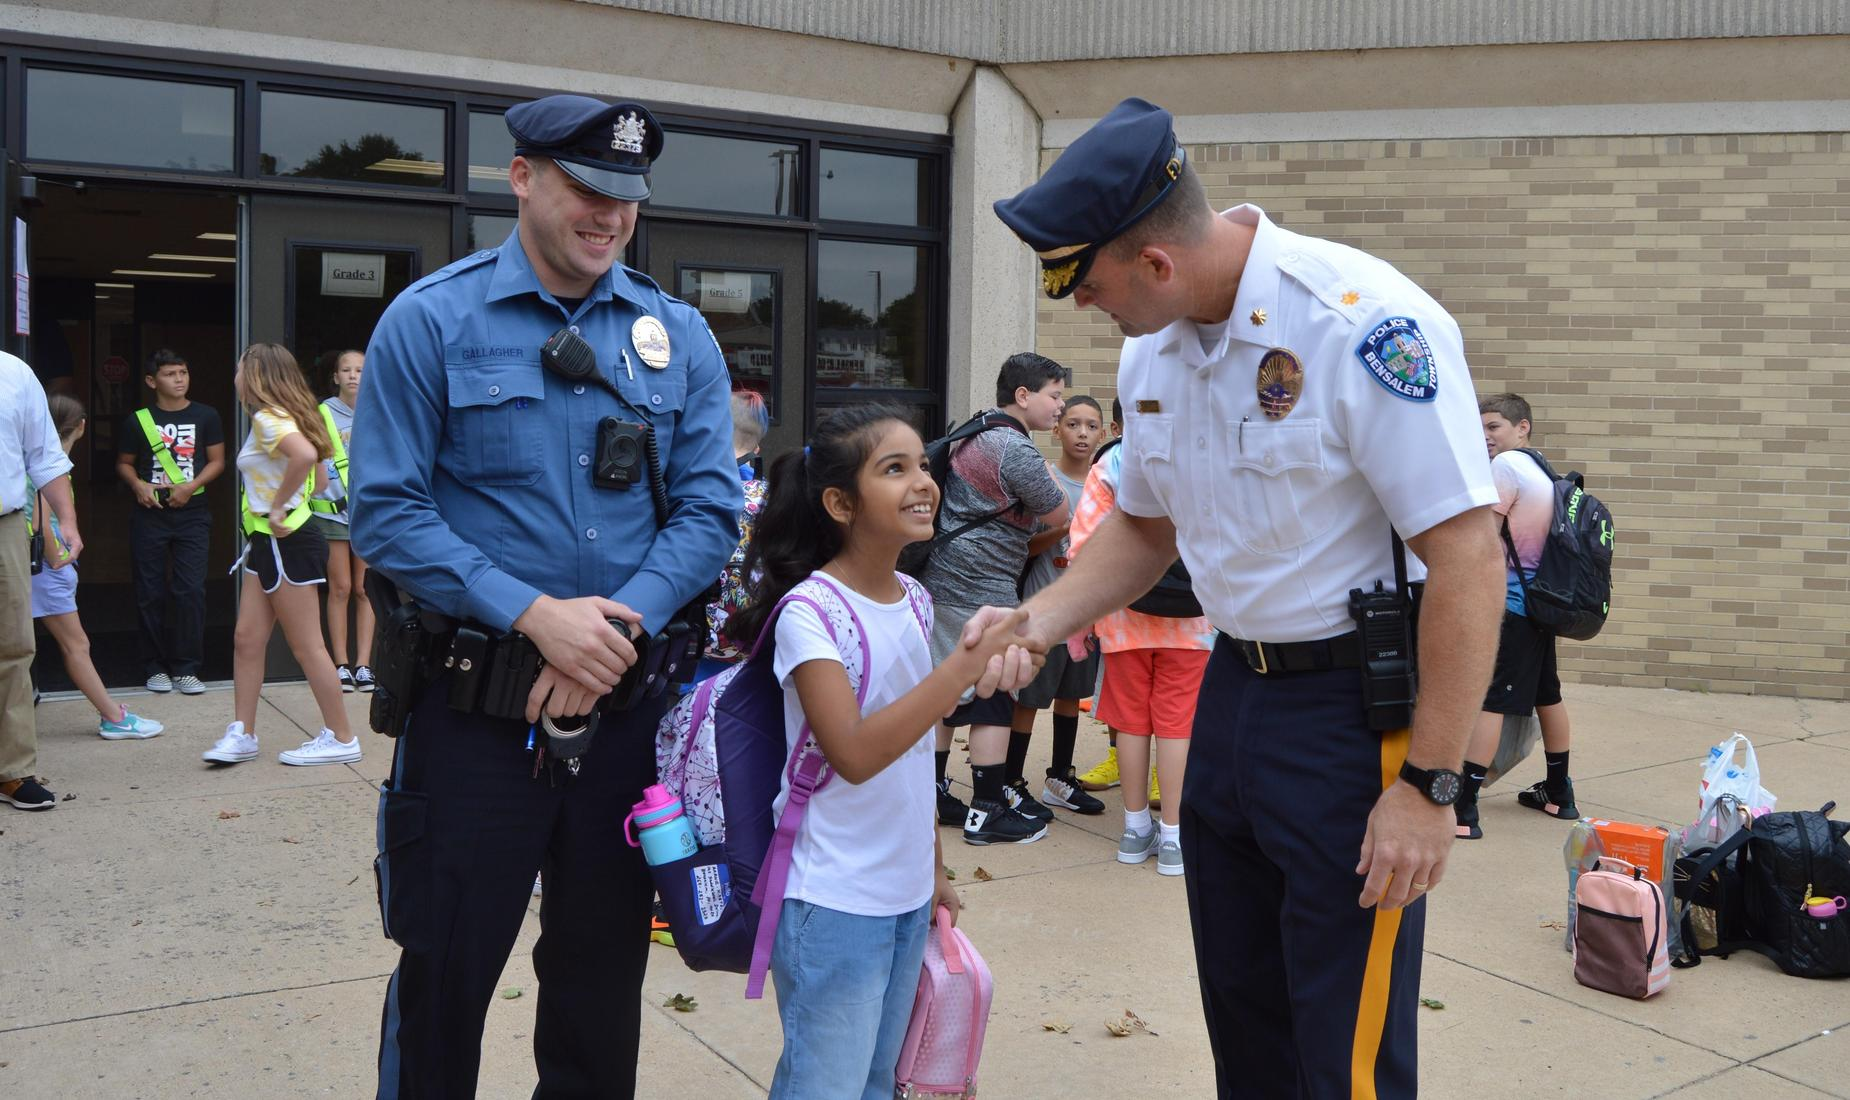 Bensalem Police Sergeant shakes hands with a young female student as a Police officers looks on smiling.